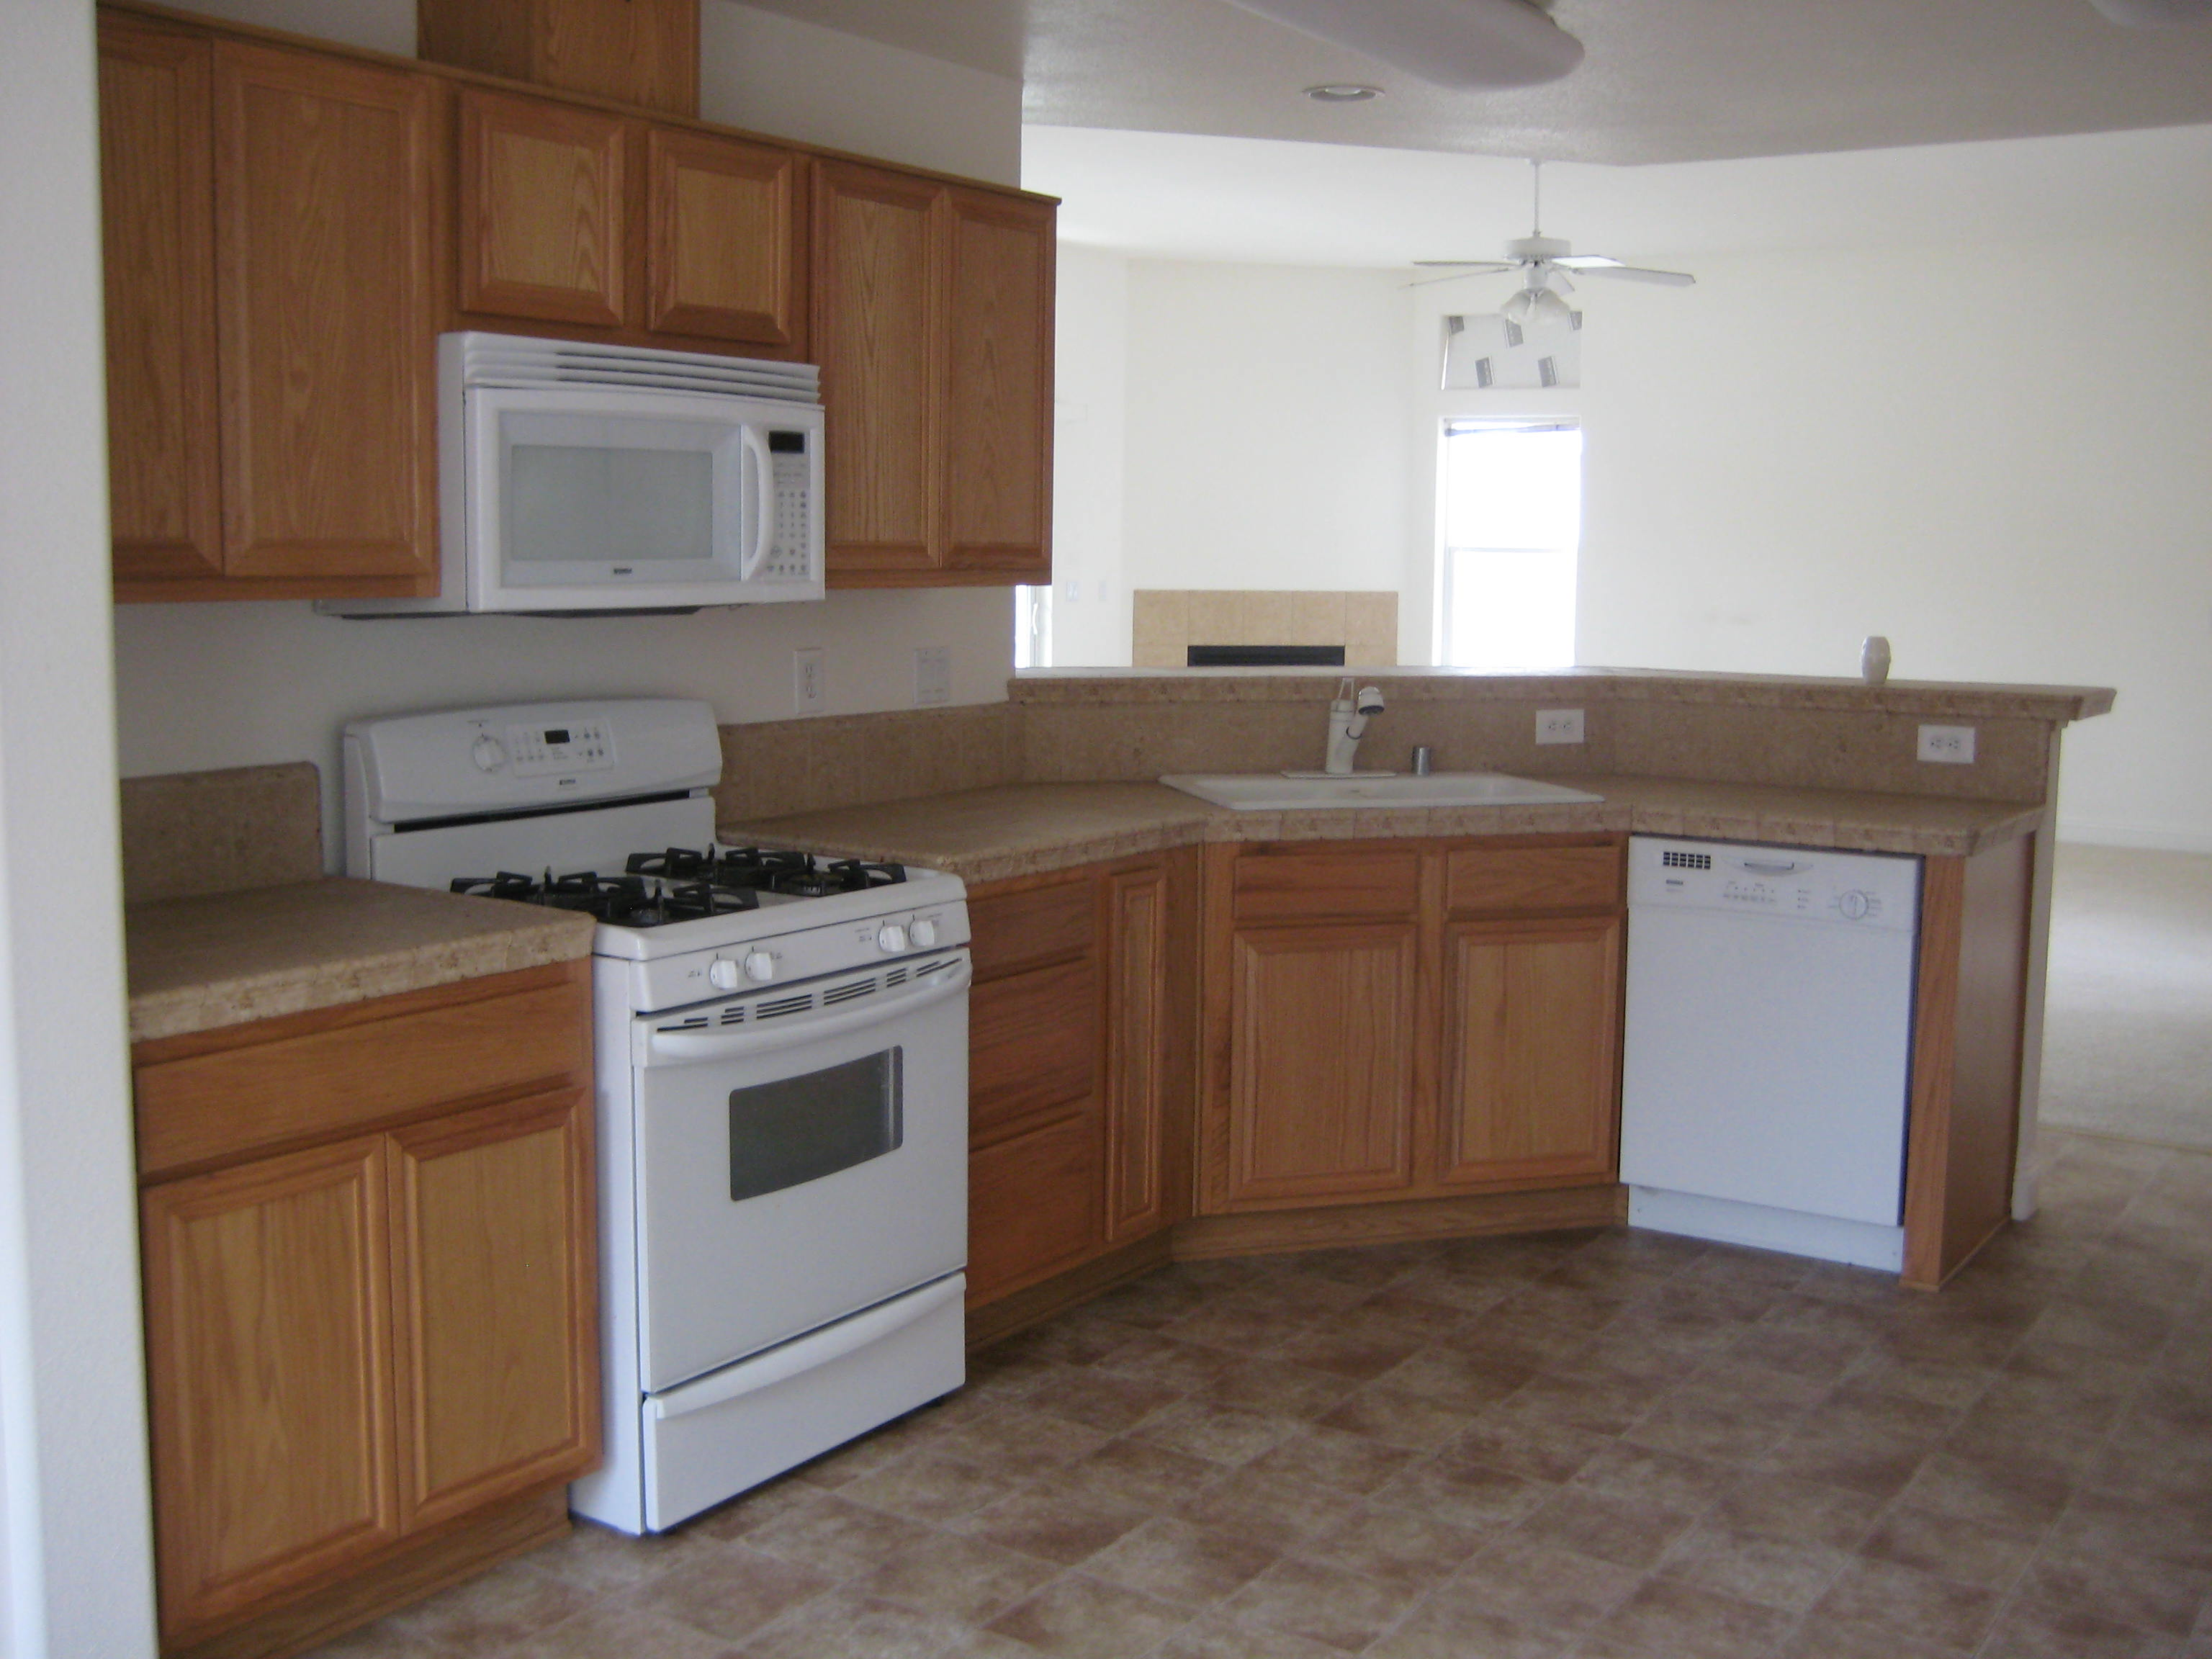 Diy project blog by samantha c conway for Affordable kitchen remodel ideas